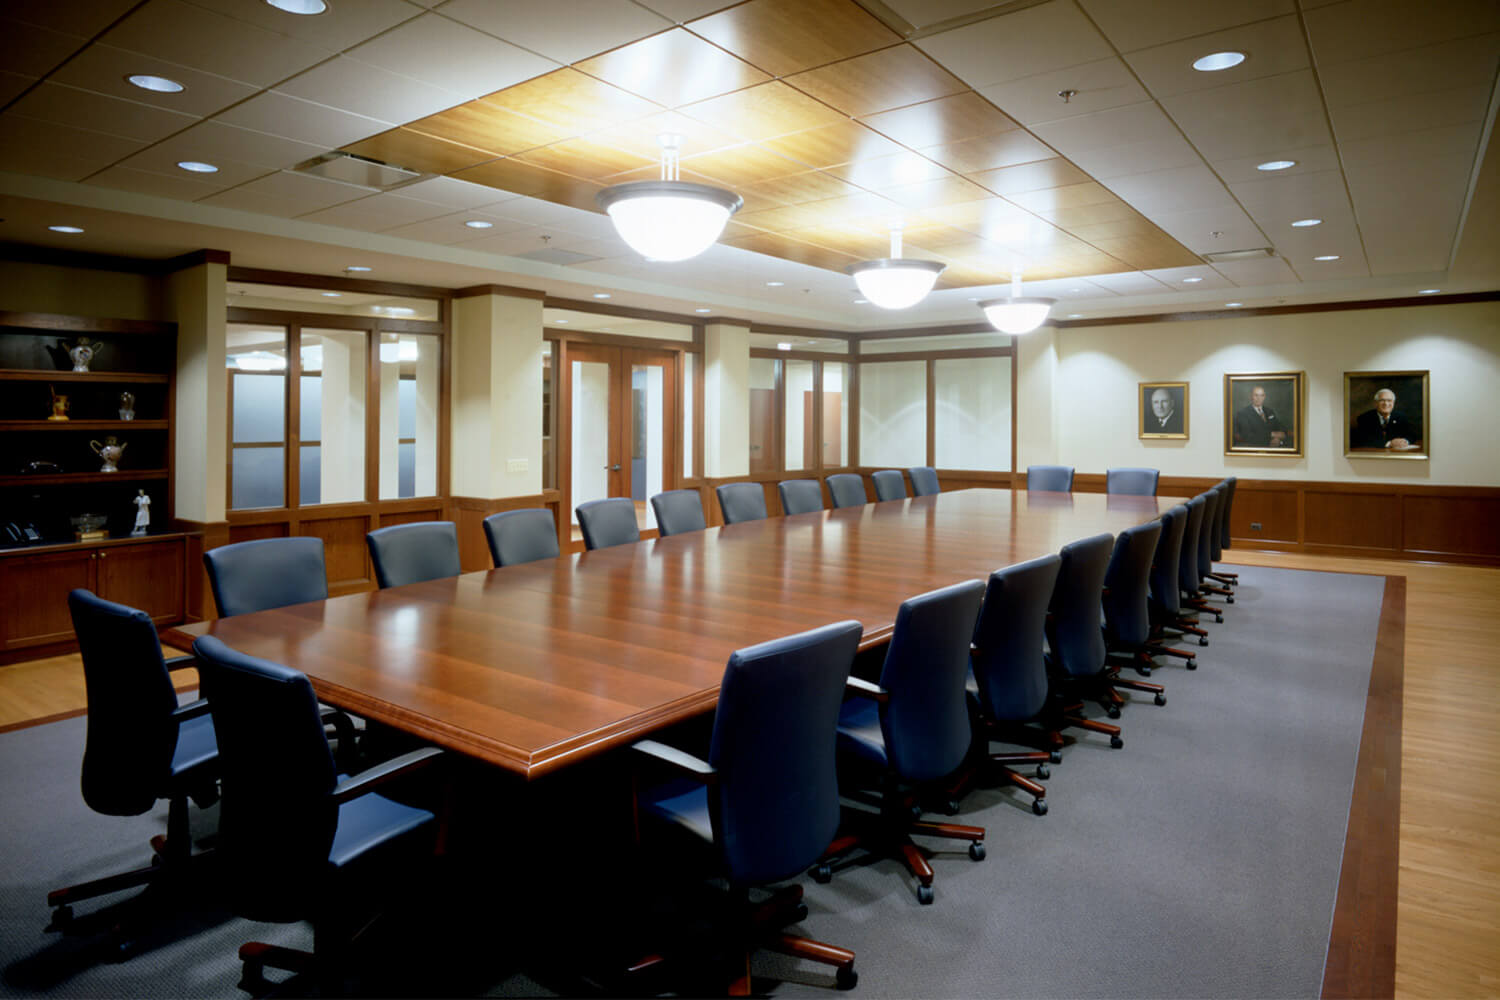 National Association of Boards of Pharmacy conference room